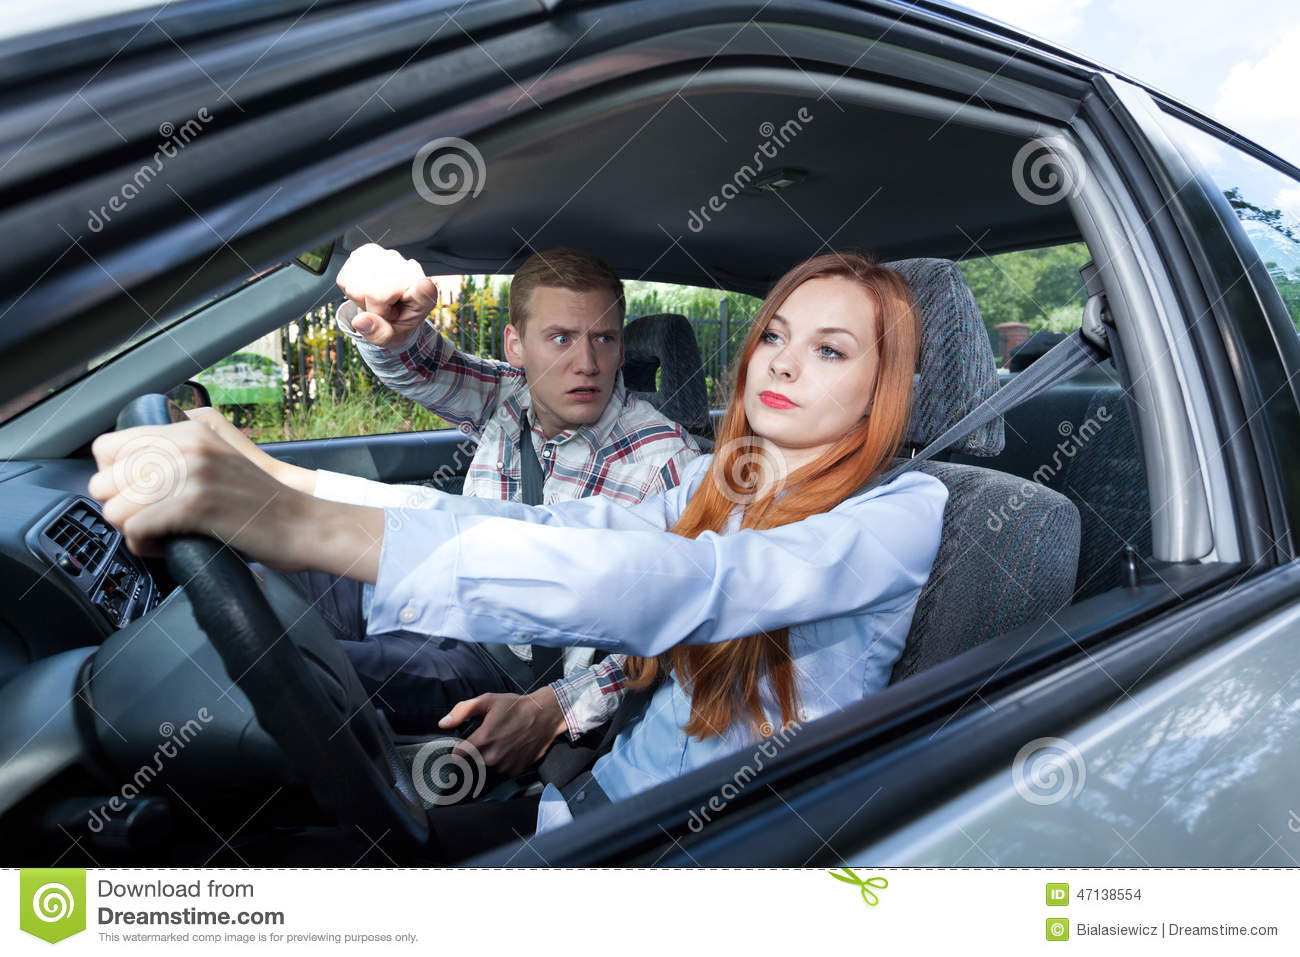 Men and Women Drivers: The Gender Divide